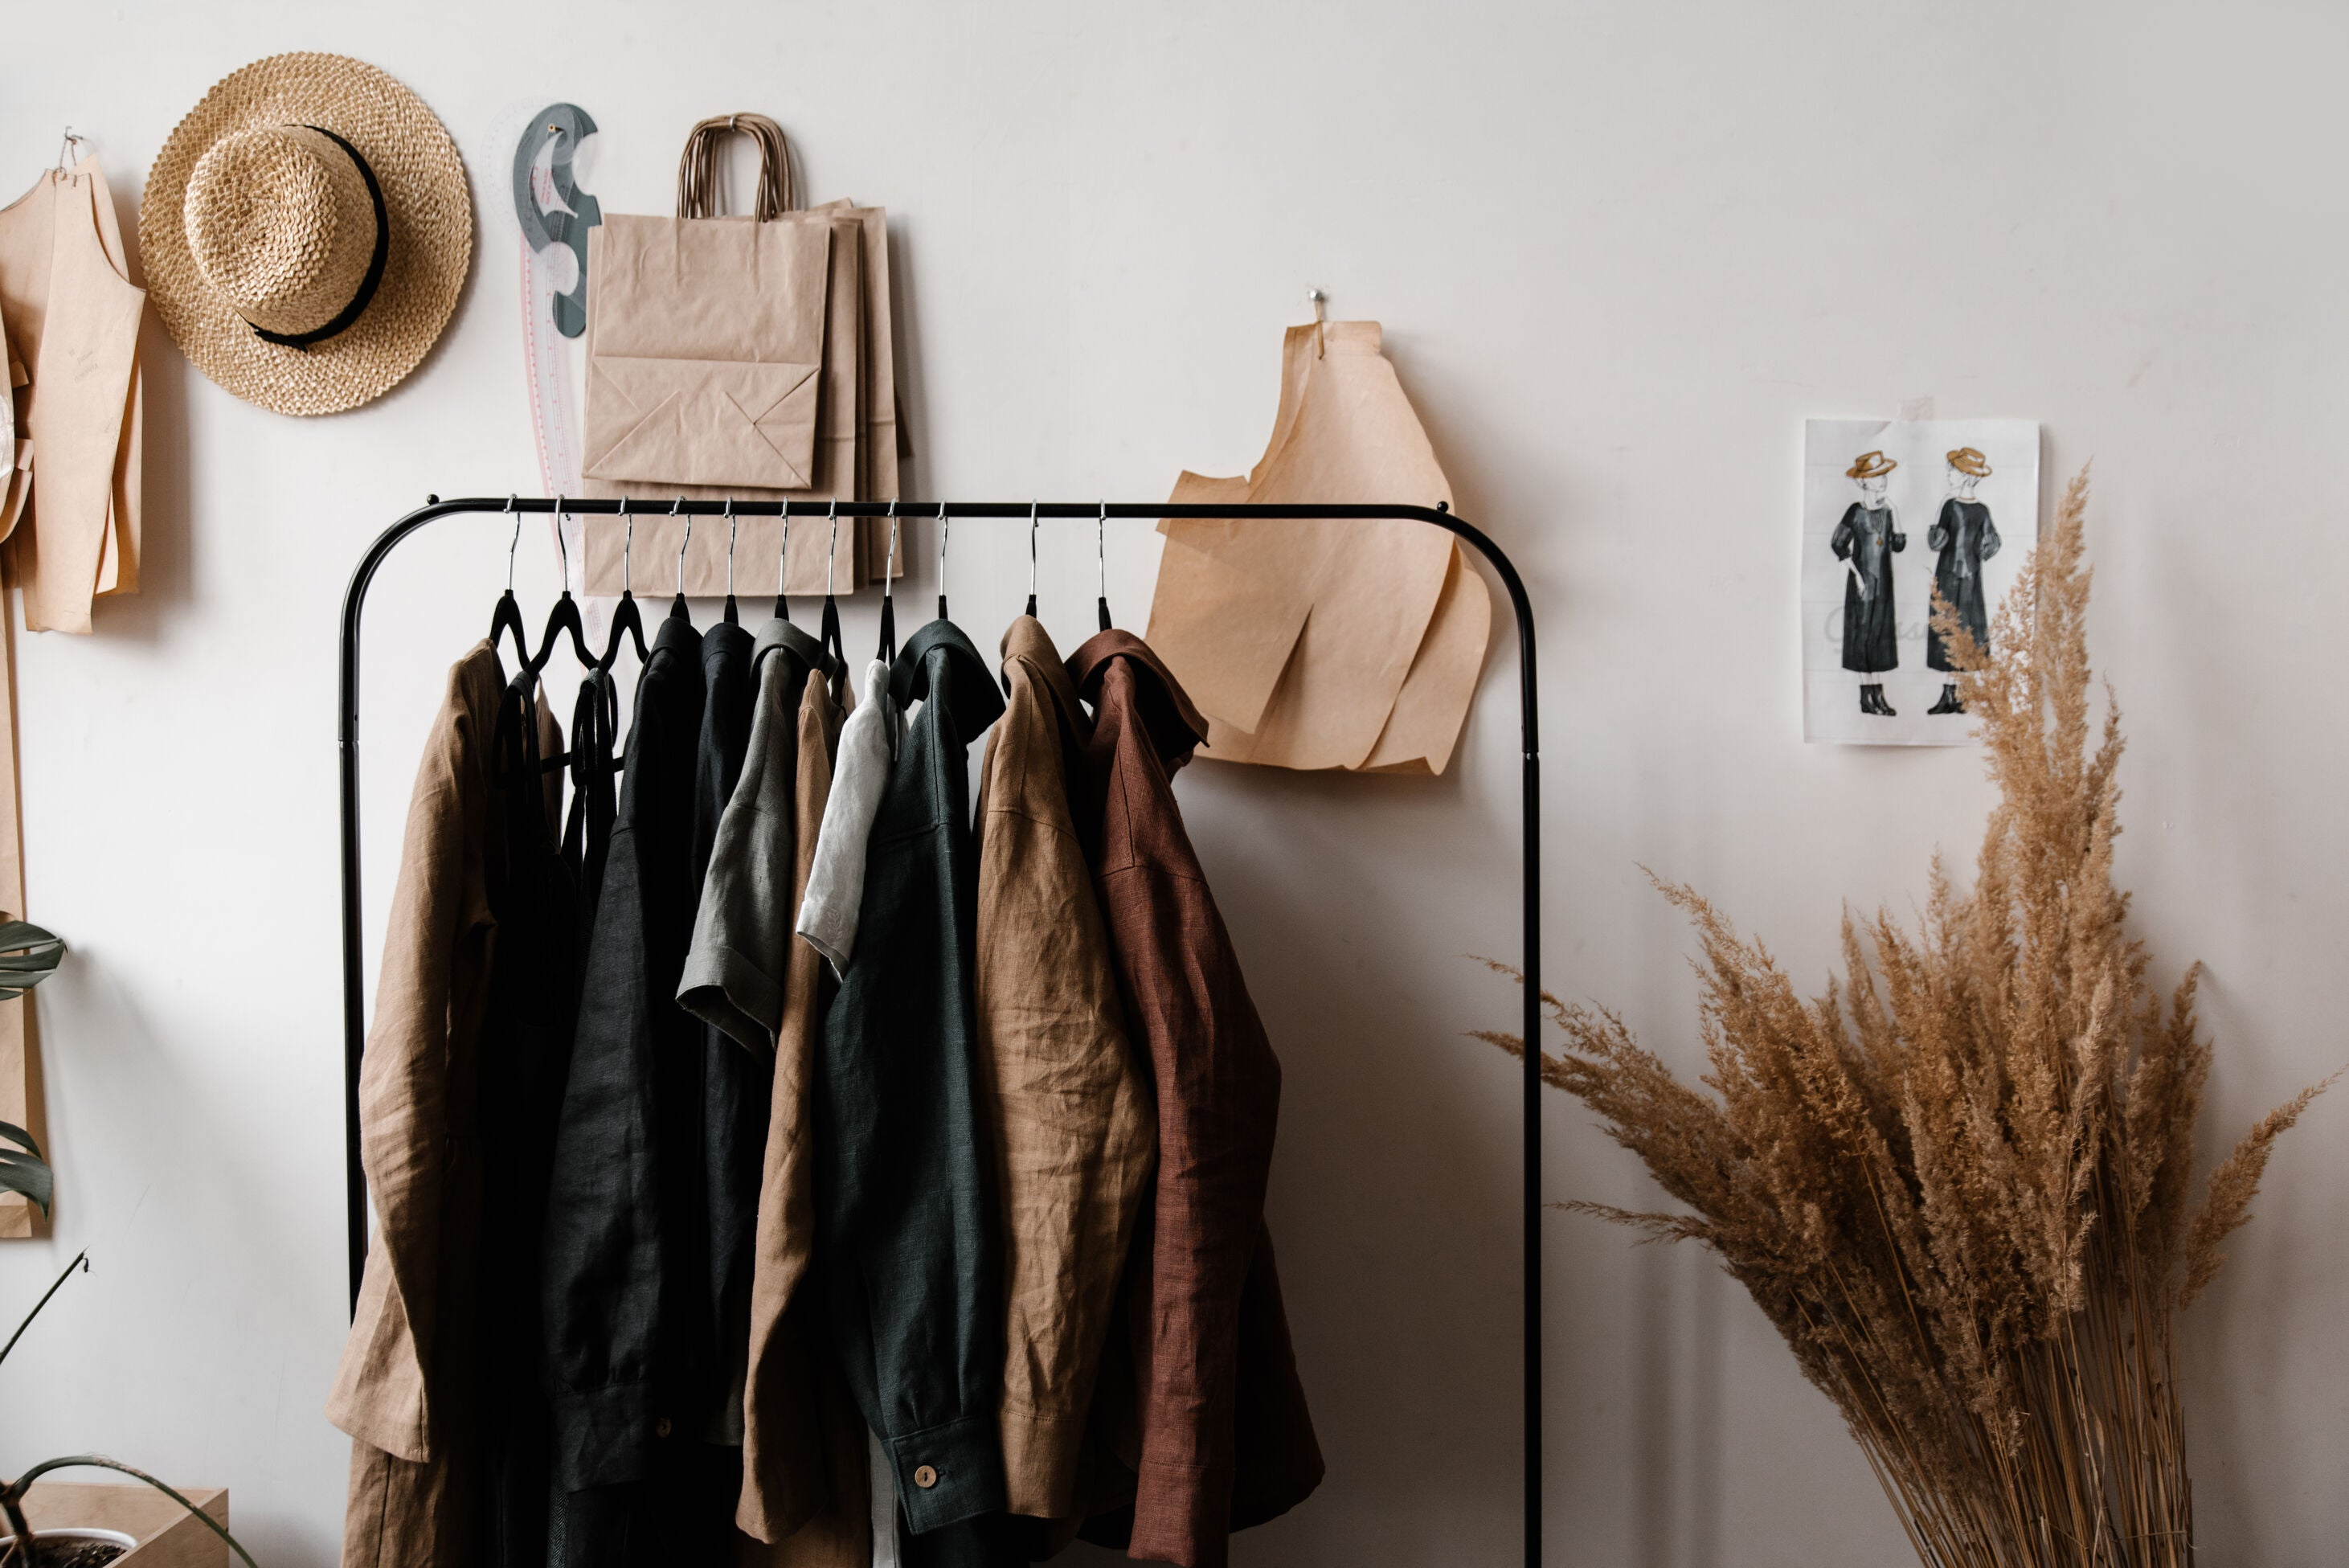 How To Source Fabric For Your Clothing Line — Open a Retail Store